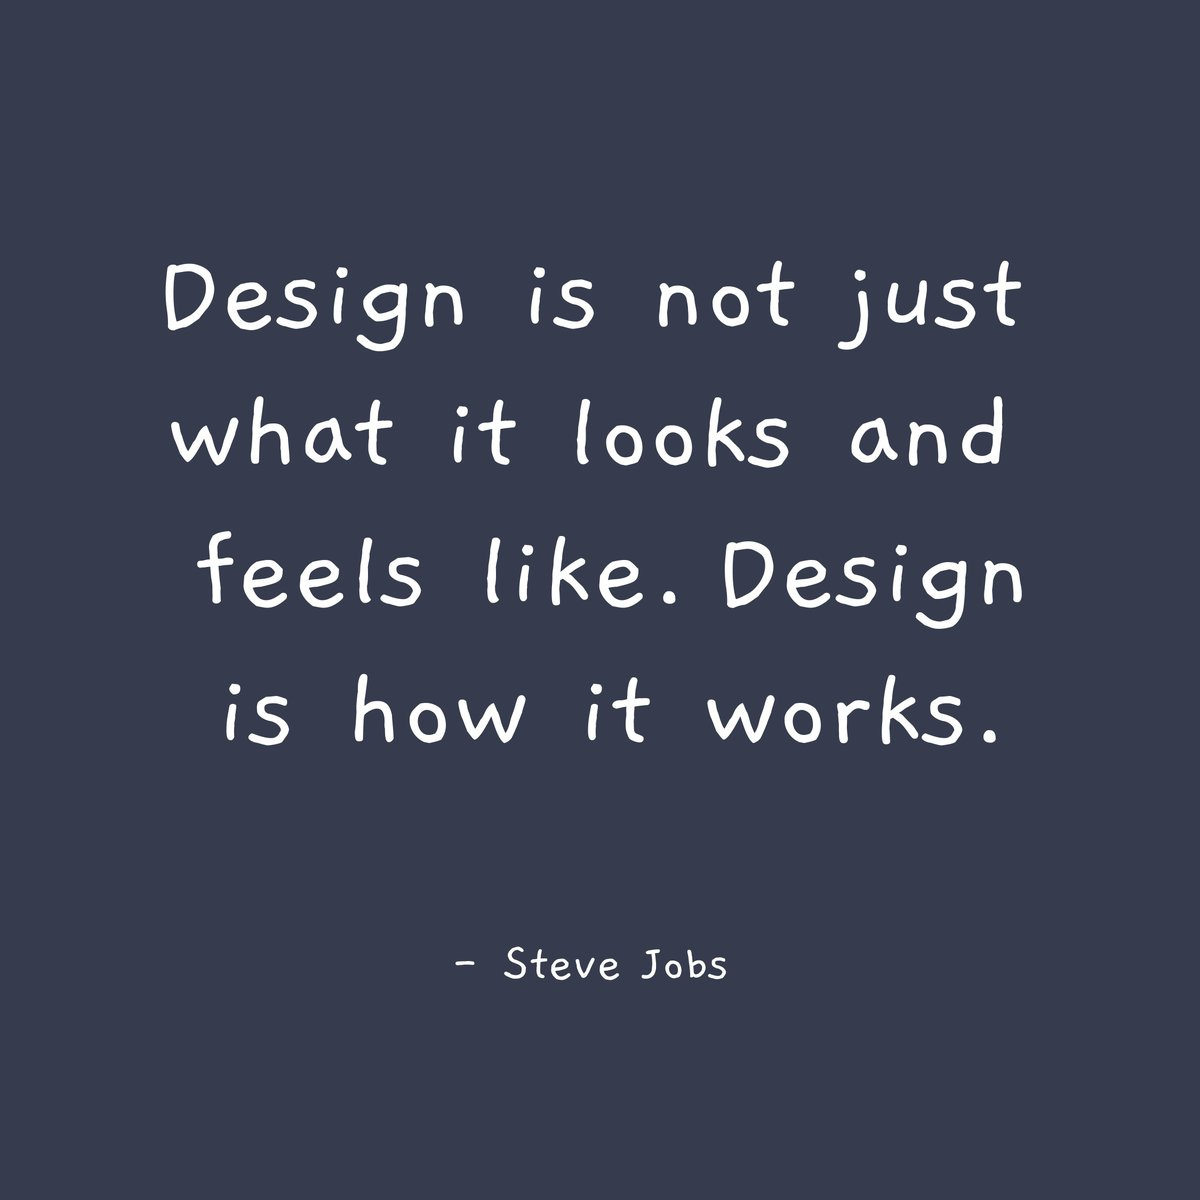 Design is not just what it looks like. Design is how it works. #MondayMotivation #Design #Quote